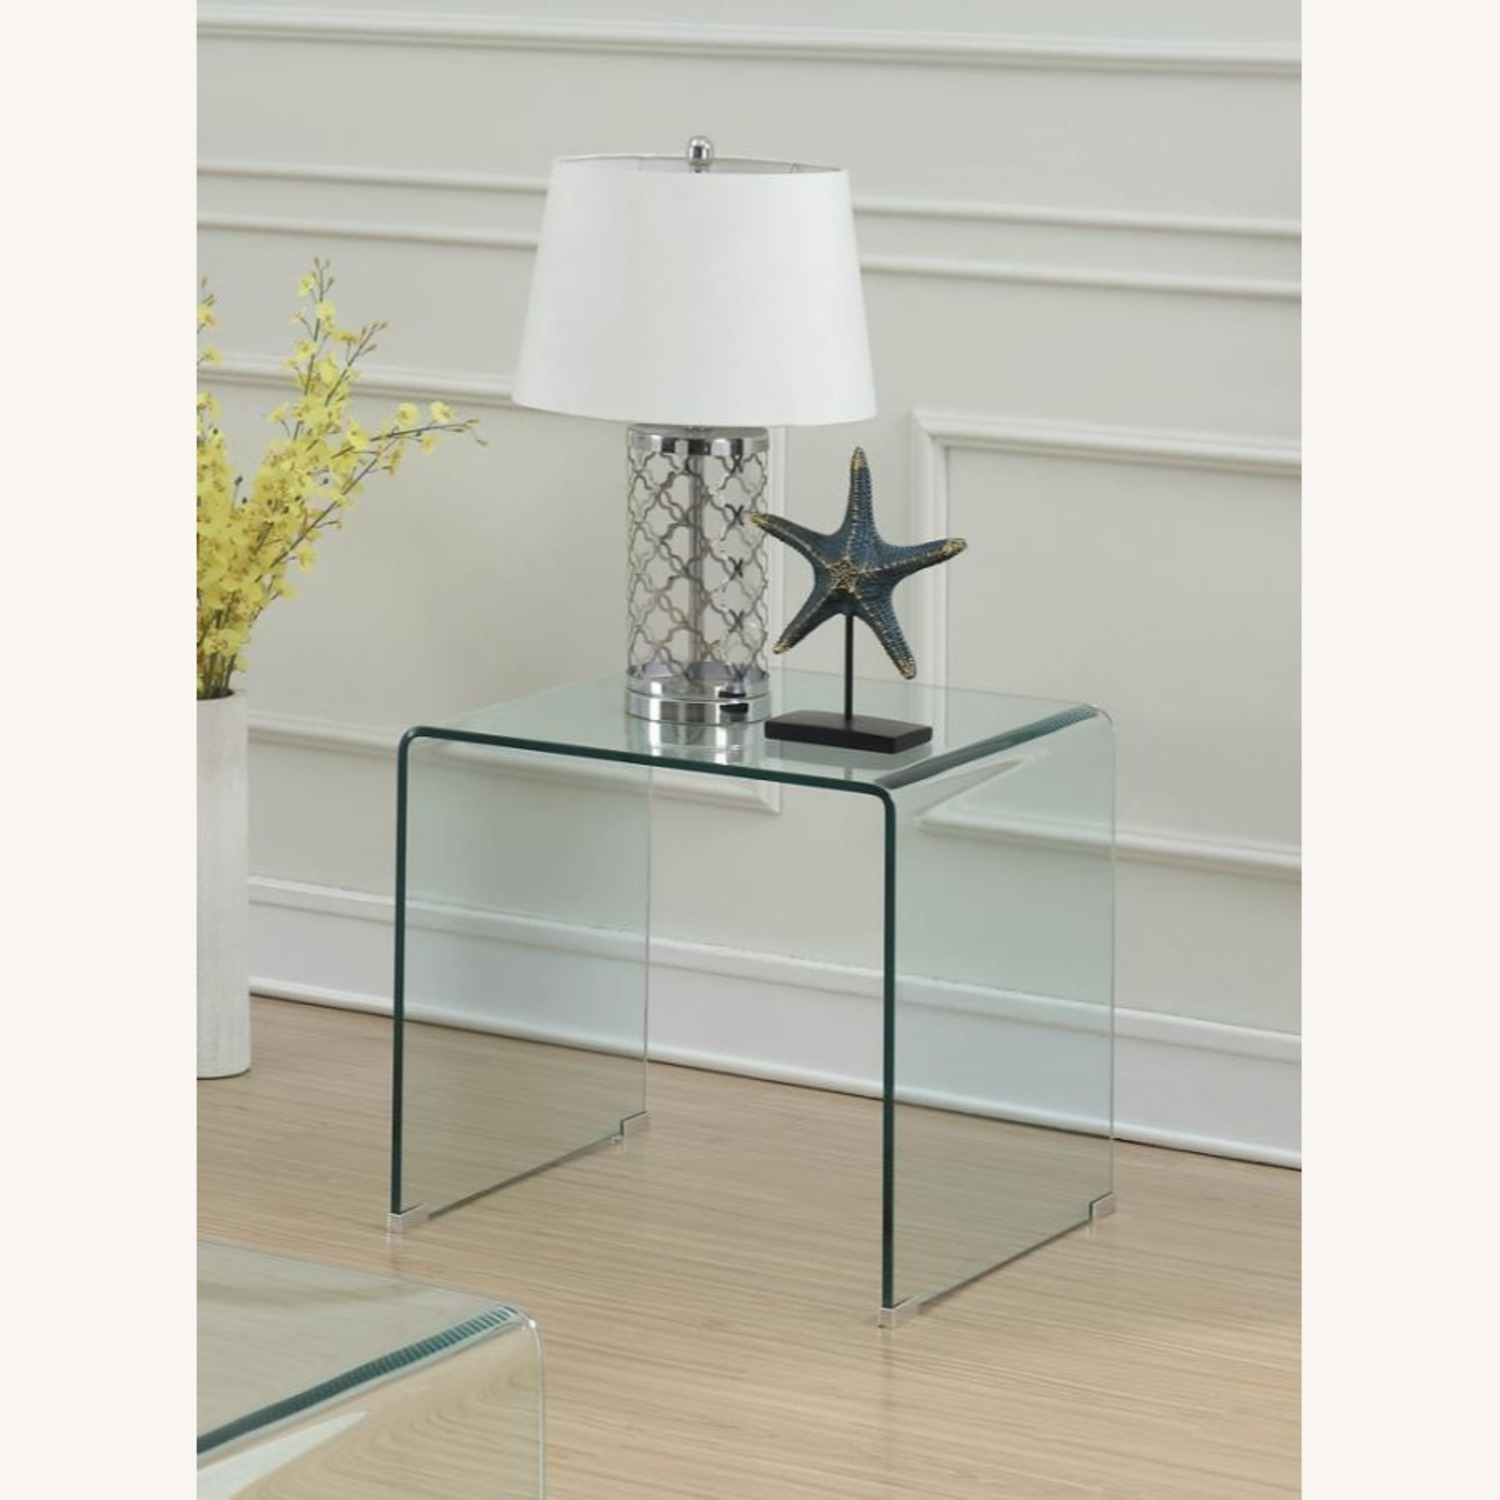 End Table In A Clear Finish W/ Curved Top Edge - image-3